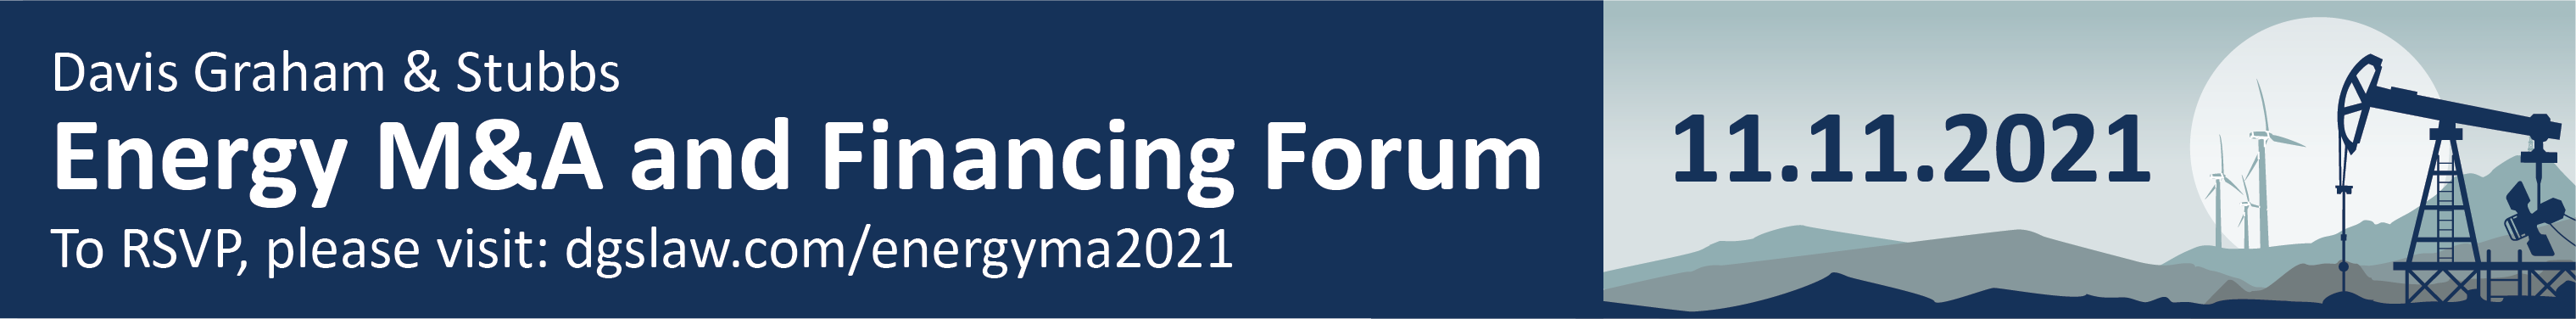 2021 Energy M&A and Financing Forum Ad